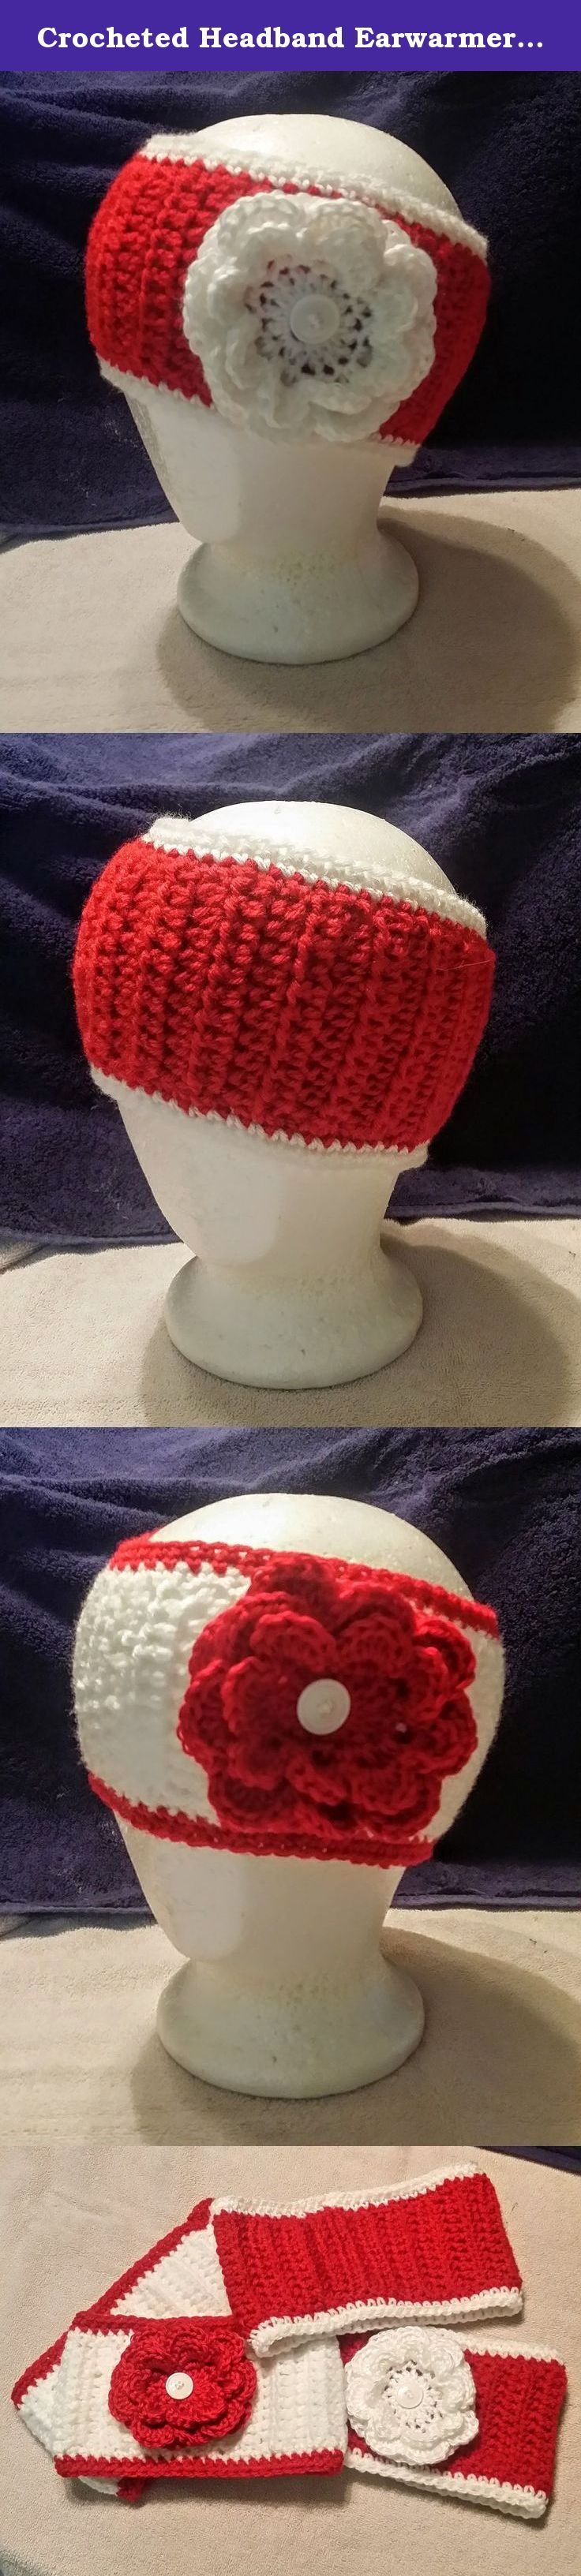 """Crocheted Headband Earwarmer, flower or plain, red and white (Wisconsin, Badgers, Nebraska, Cornhuskers, Stanford, Alabama, Crimson Tide, Arkansas,Razorbacks, Houston). Hand crocheted headbands will keep your ears warm in team style! For men or women. These headbands are a very generous 4-1/2"""" to 5"""" wide, nicely stretchy and very comfortable. Crafted from premium worsted-weight yarn, this quality fiber is soft and warm without being thick, bulky, or clunky. Combined with the ribbed stitch..."""